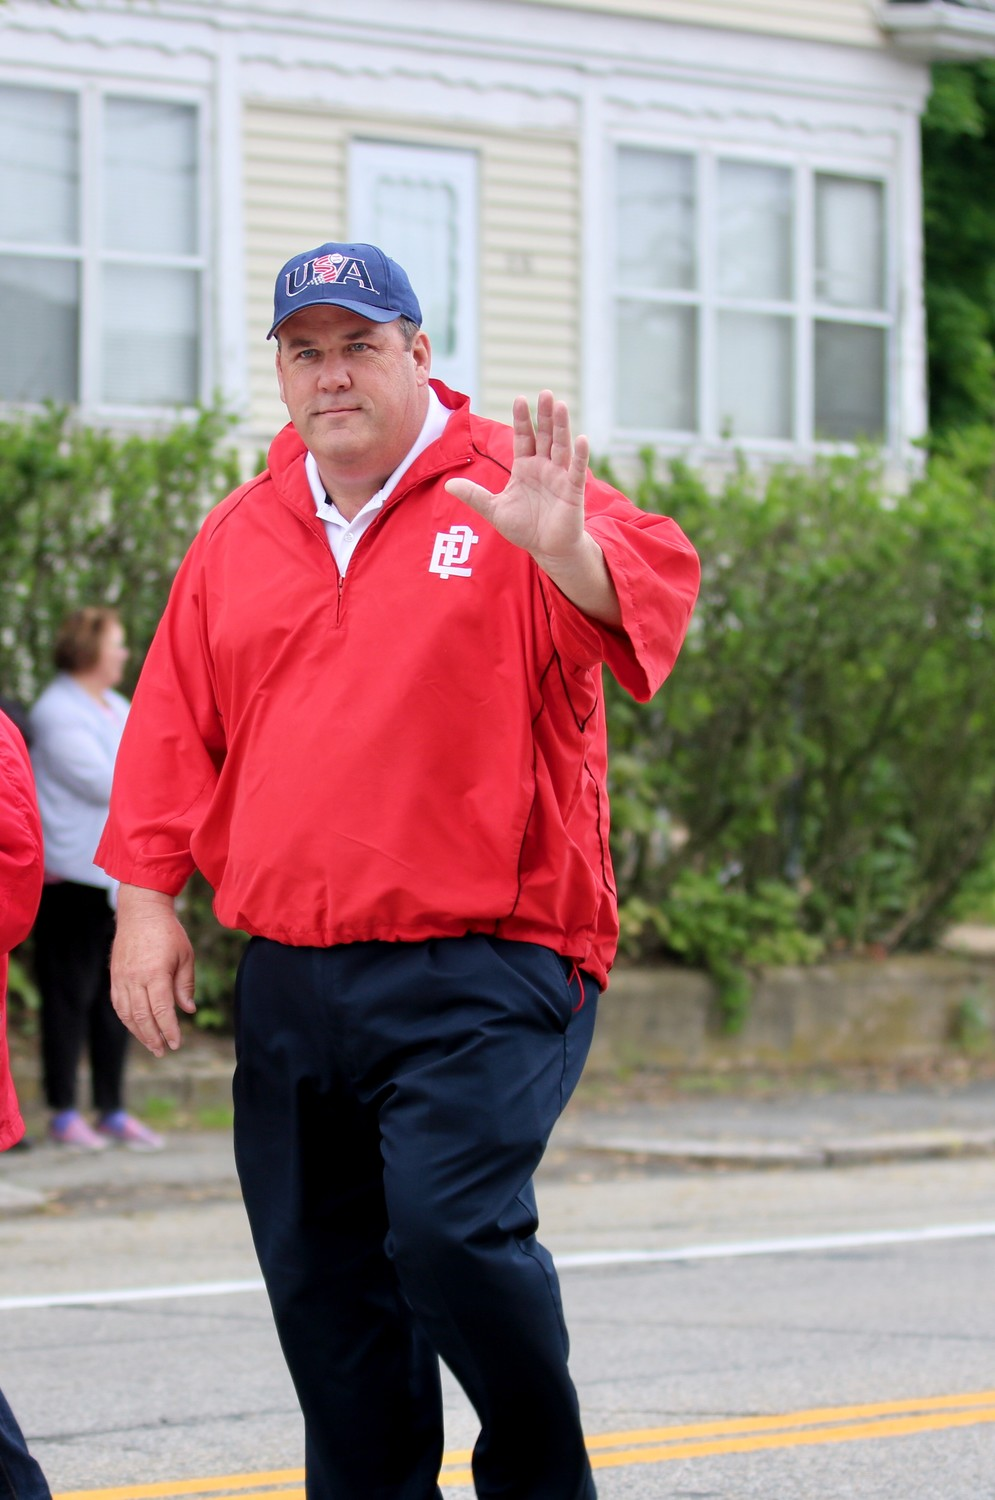 State Representative and EP Athletic Director, Gregg Amore marching in Memorial Day Parade.